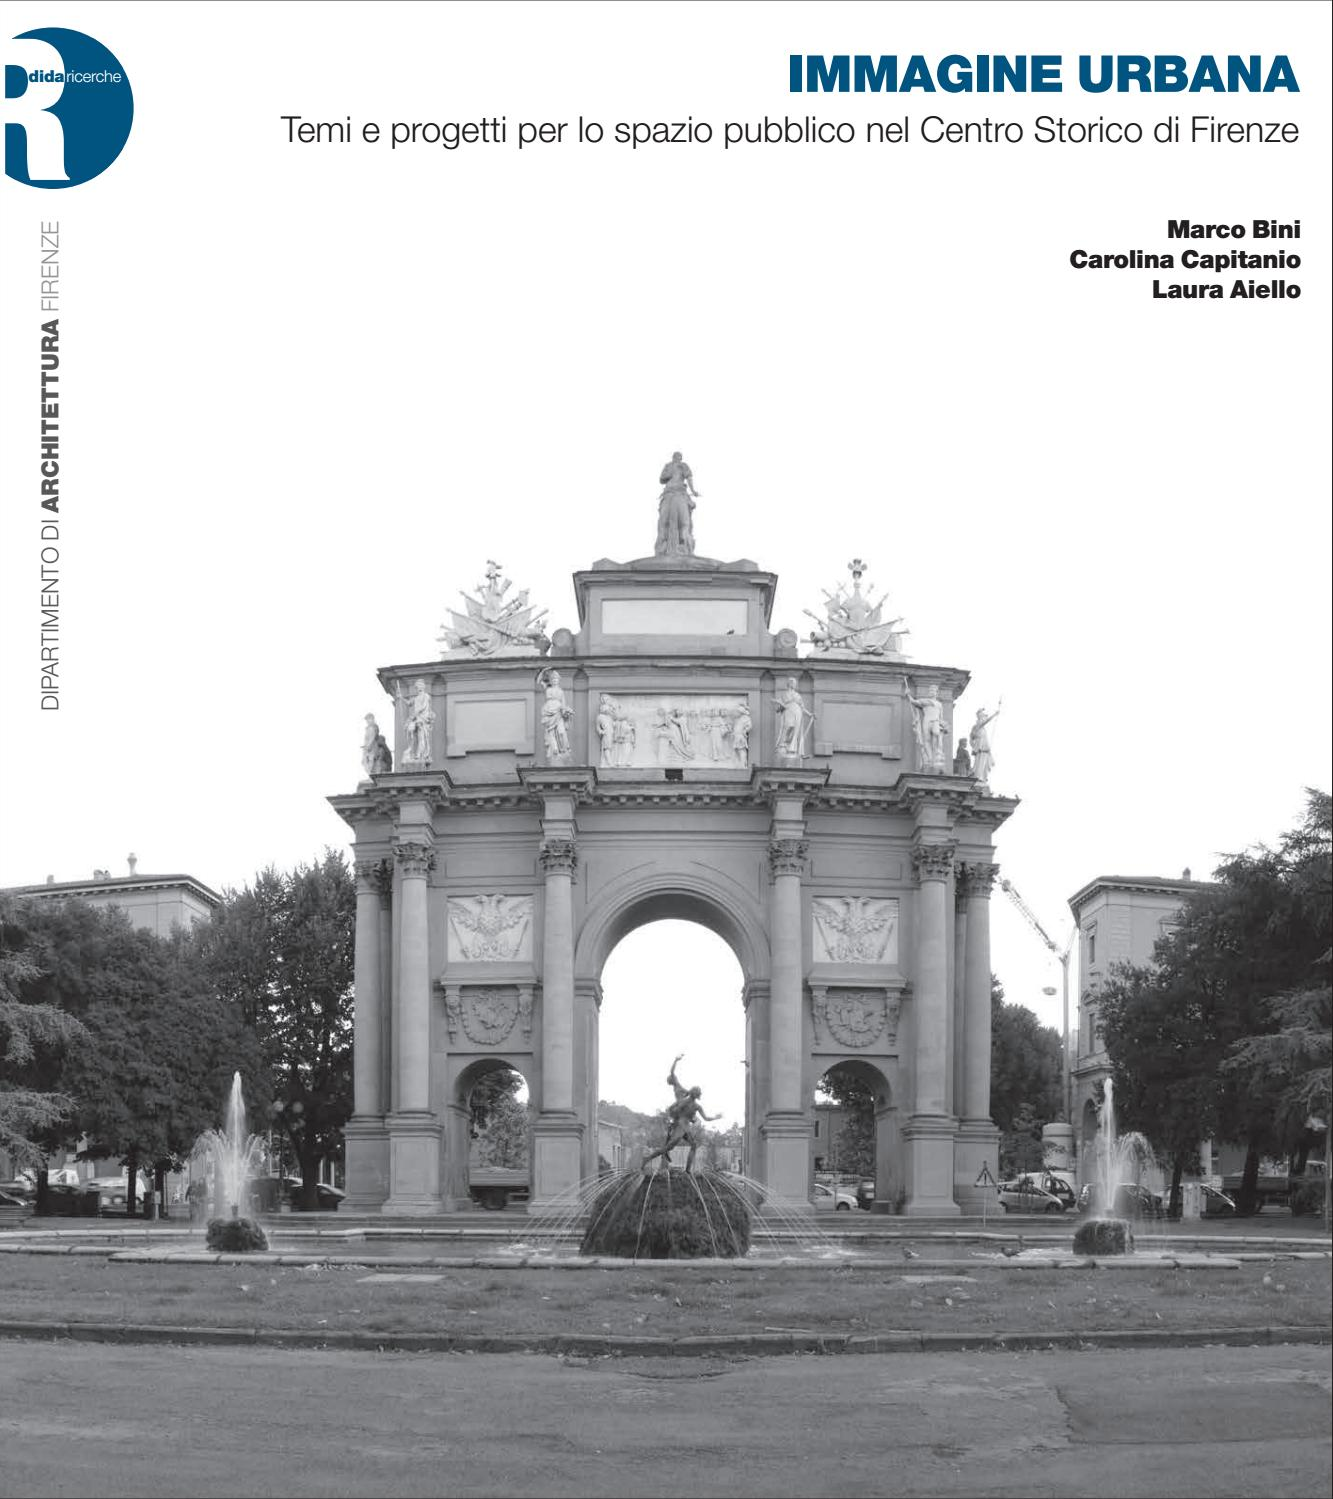 Immagine Urbana Bini Capitanio Aiello By Dida Issuu